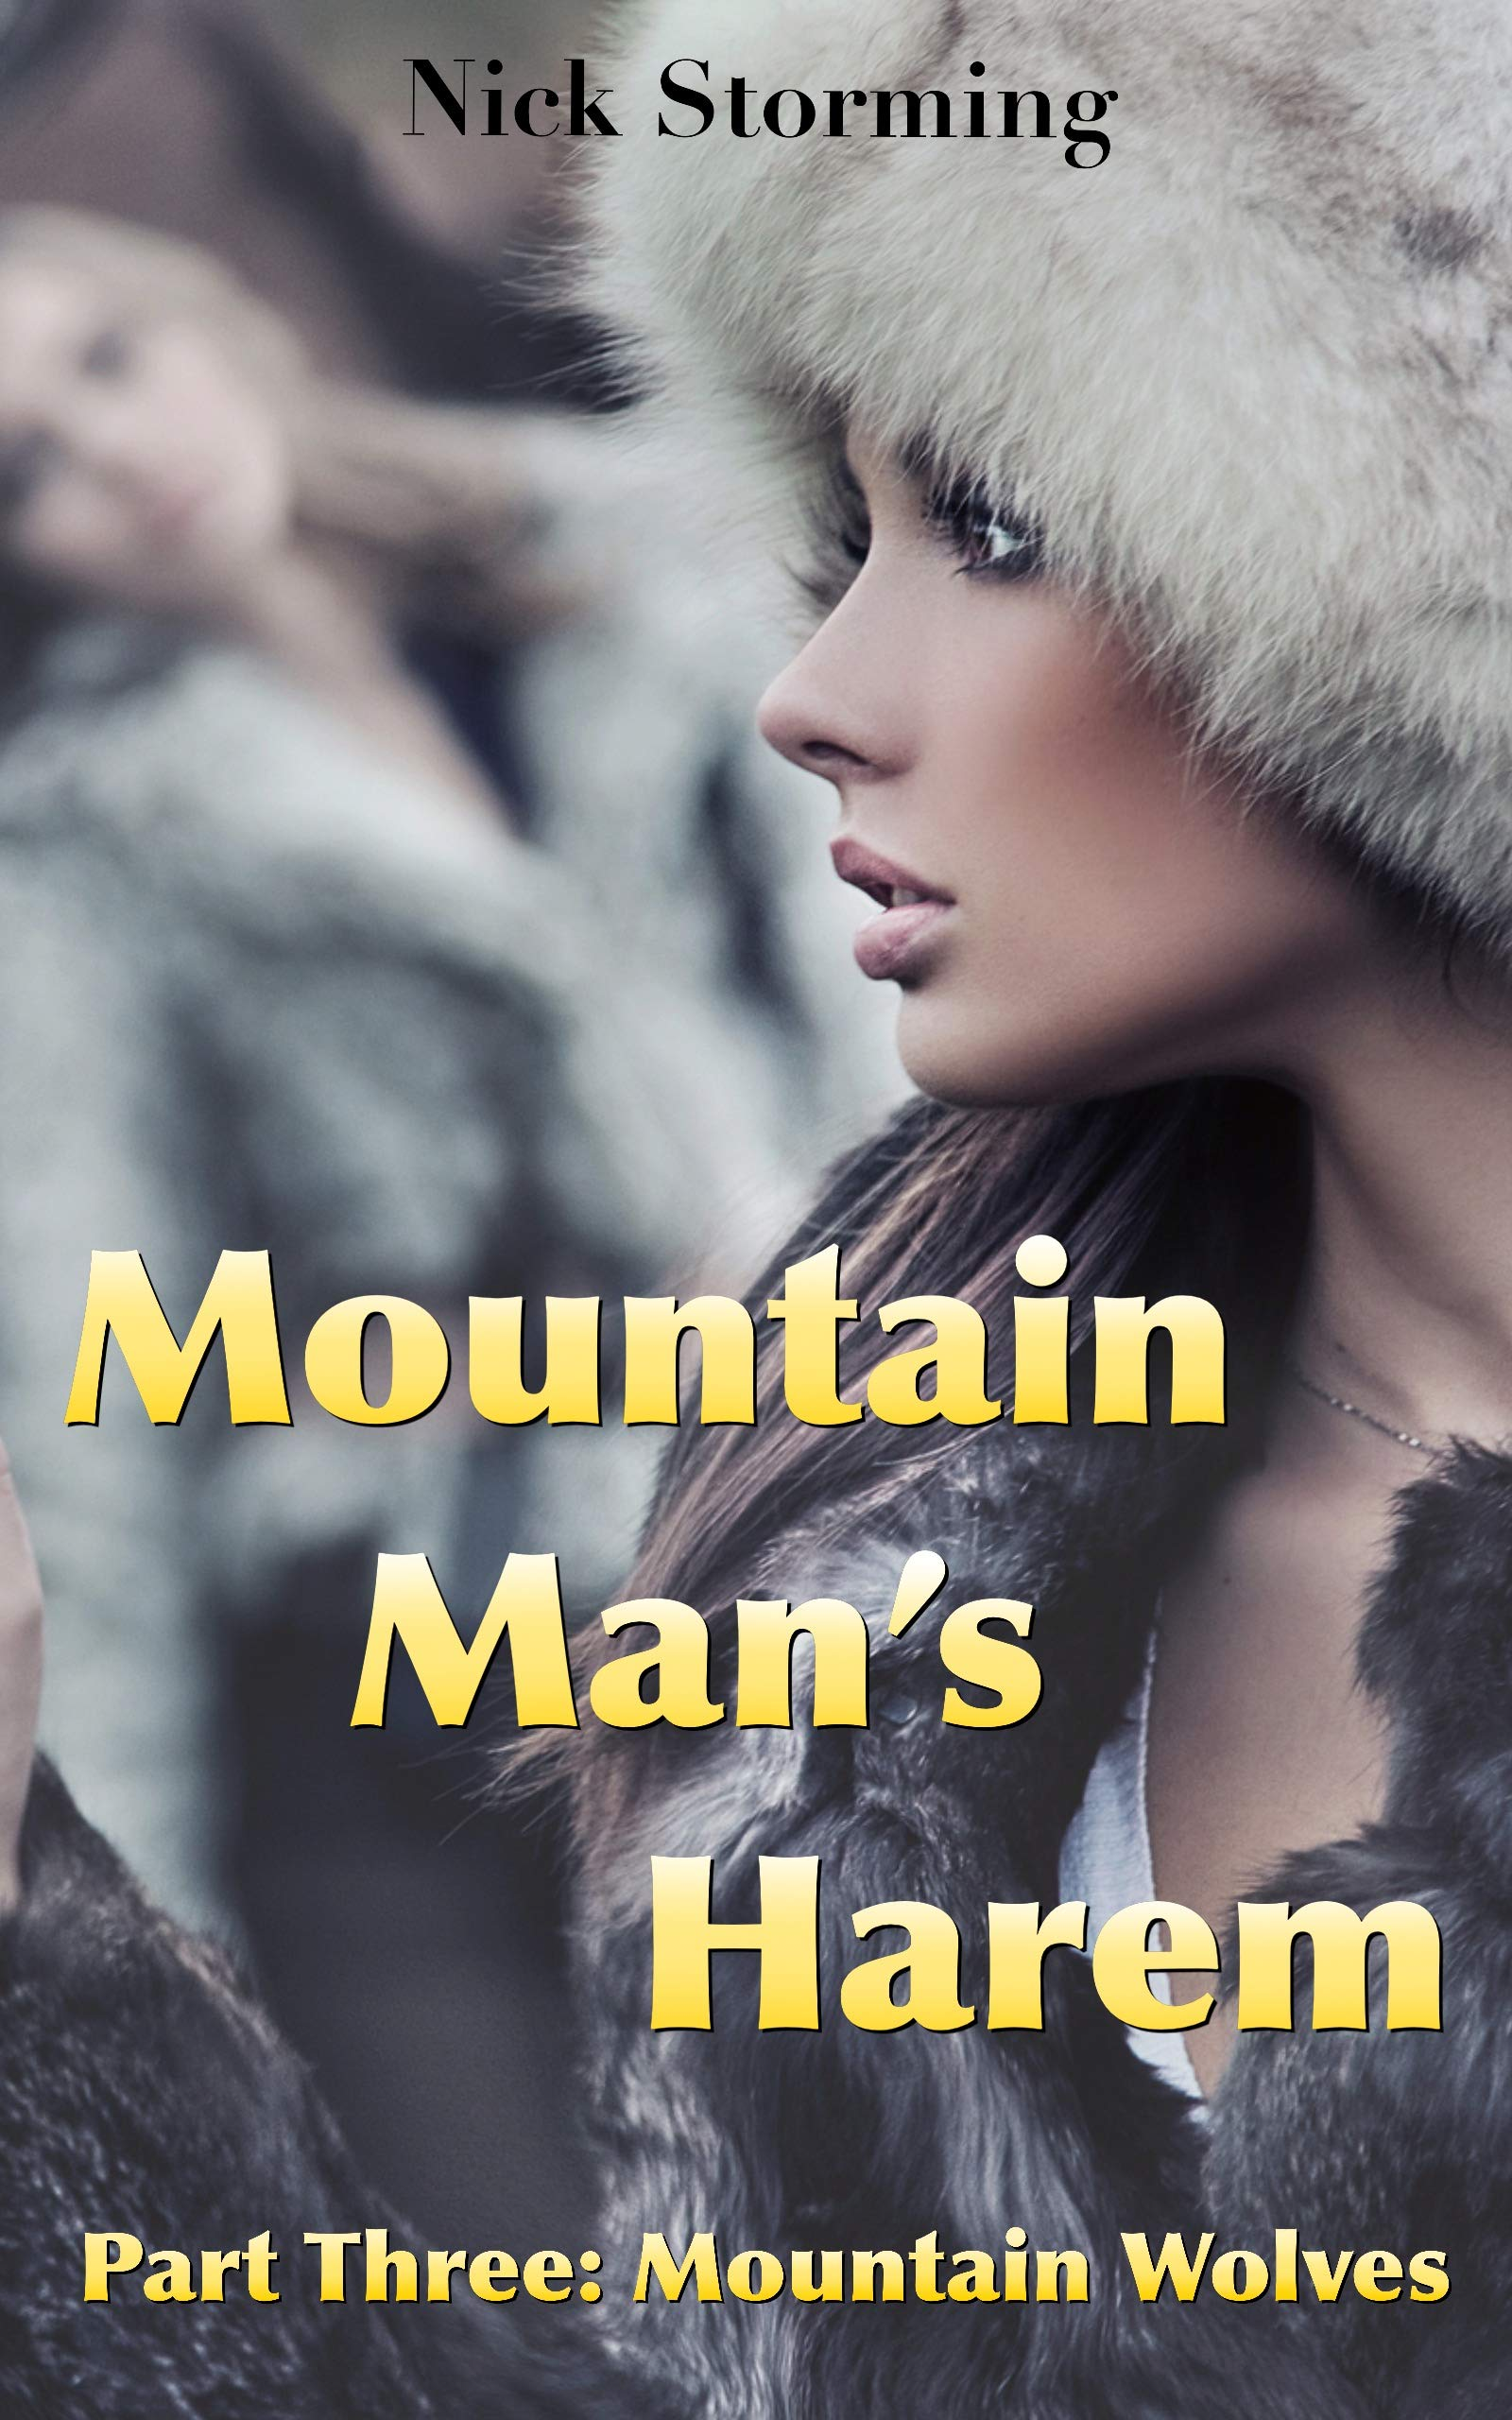 Mountain Man's Harem: Part Three: Mountain Wolves